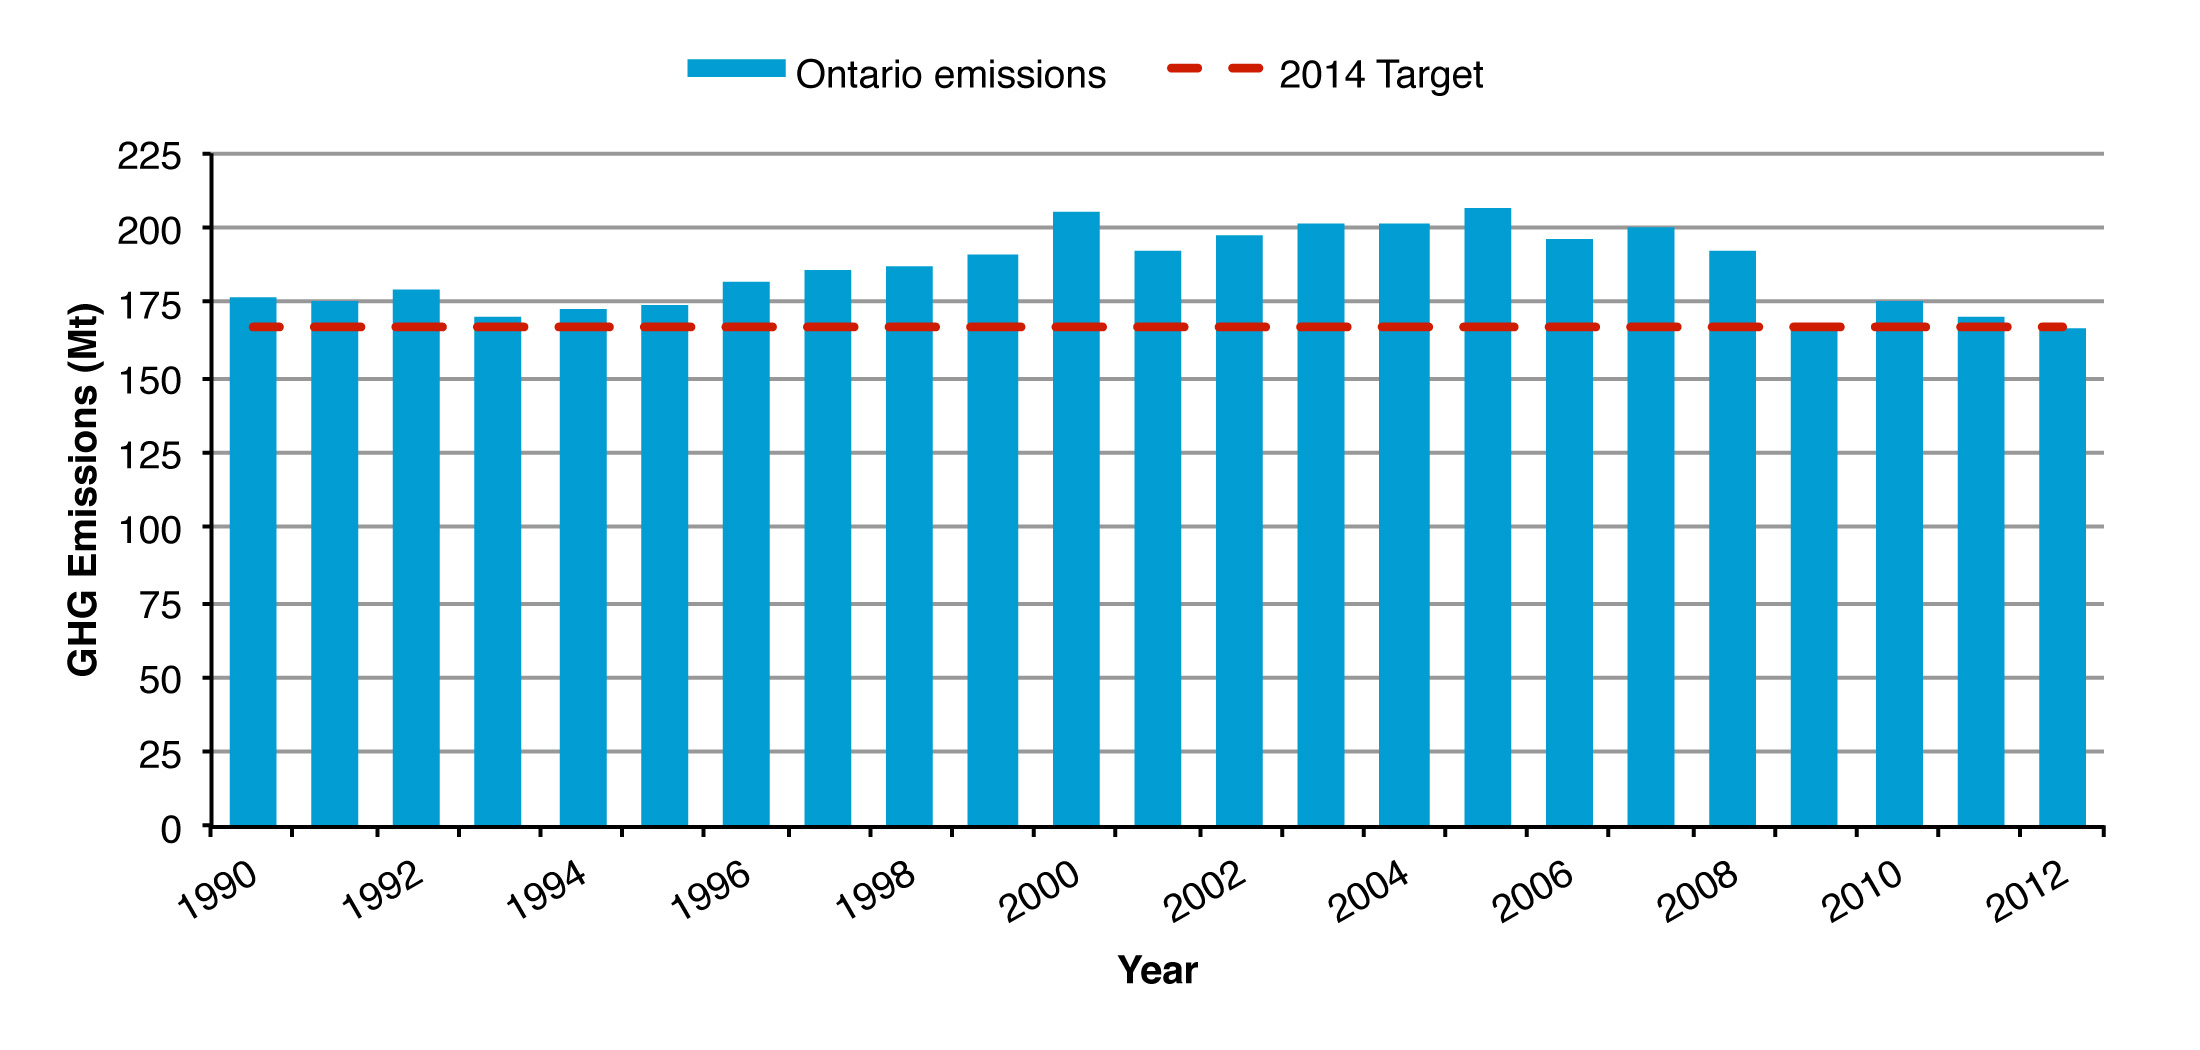 This is a bar graph showing a summary of greenhouse gas emissions in Ontario between 1990 and 2012. Greenhouse gas emissions grew from 1990 to the early 2000s, then stabilized and declined in recent years. In 2012 total greenhouse gas emissions were 167 Mt, achieving Ontario's target to reduce emissions by 6% below 1990 levels.